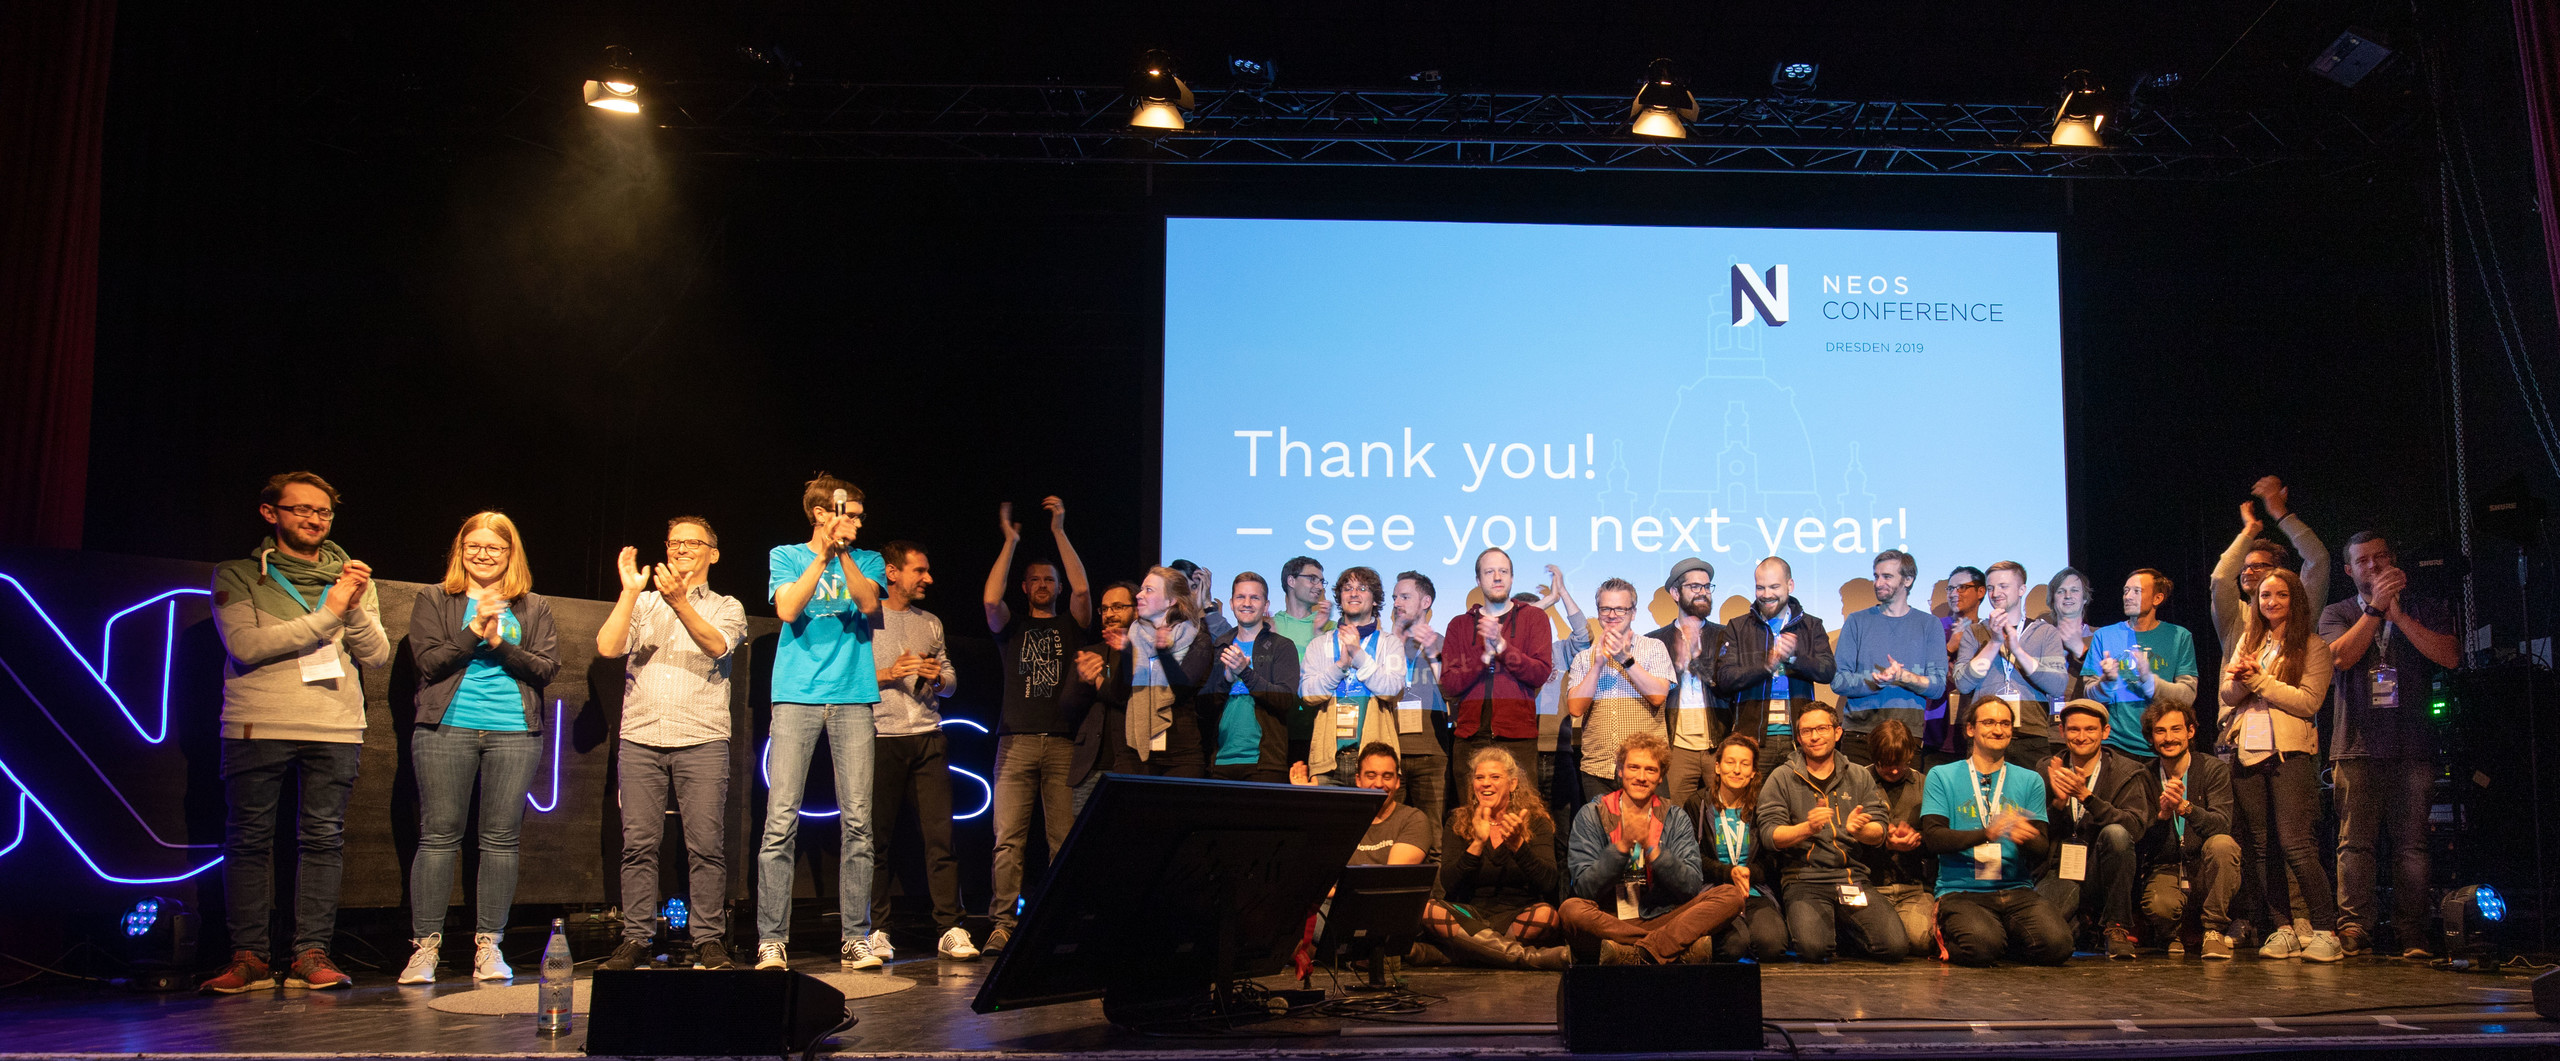 The team of Neos Conference 2019 on stage